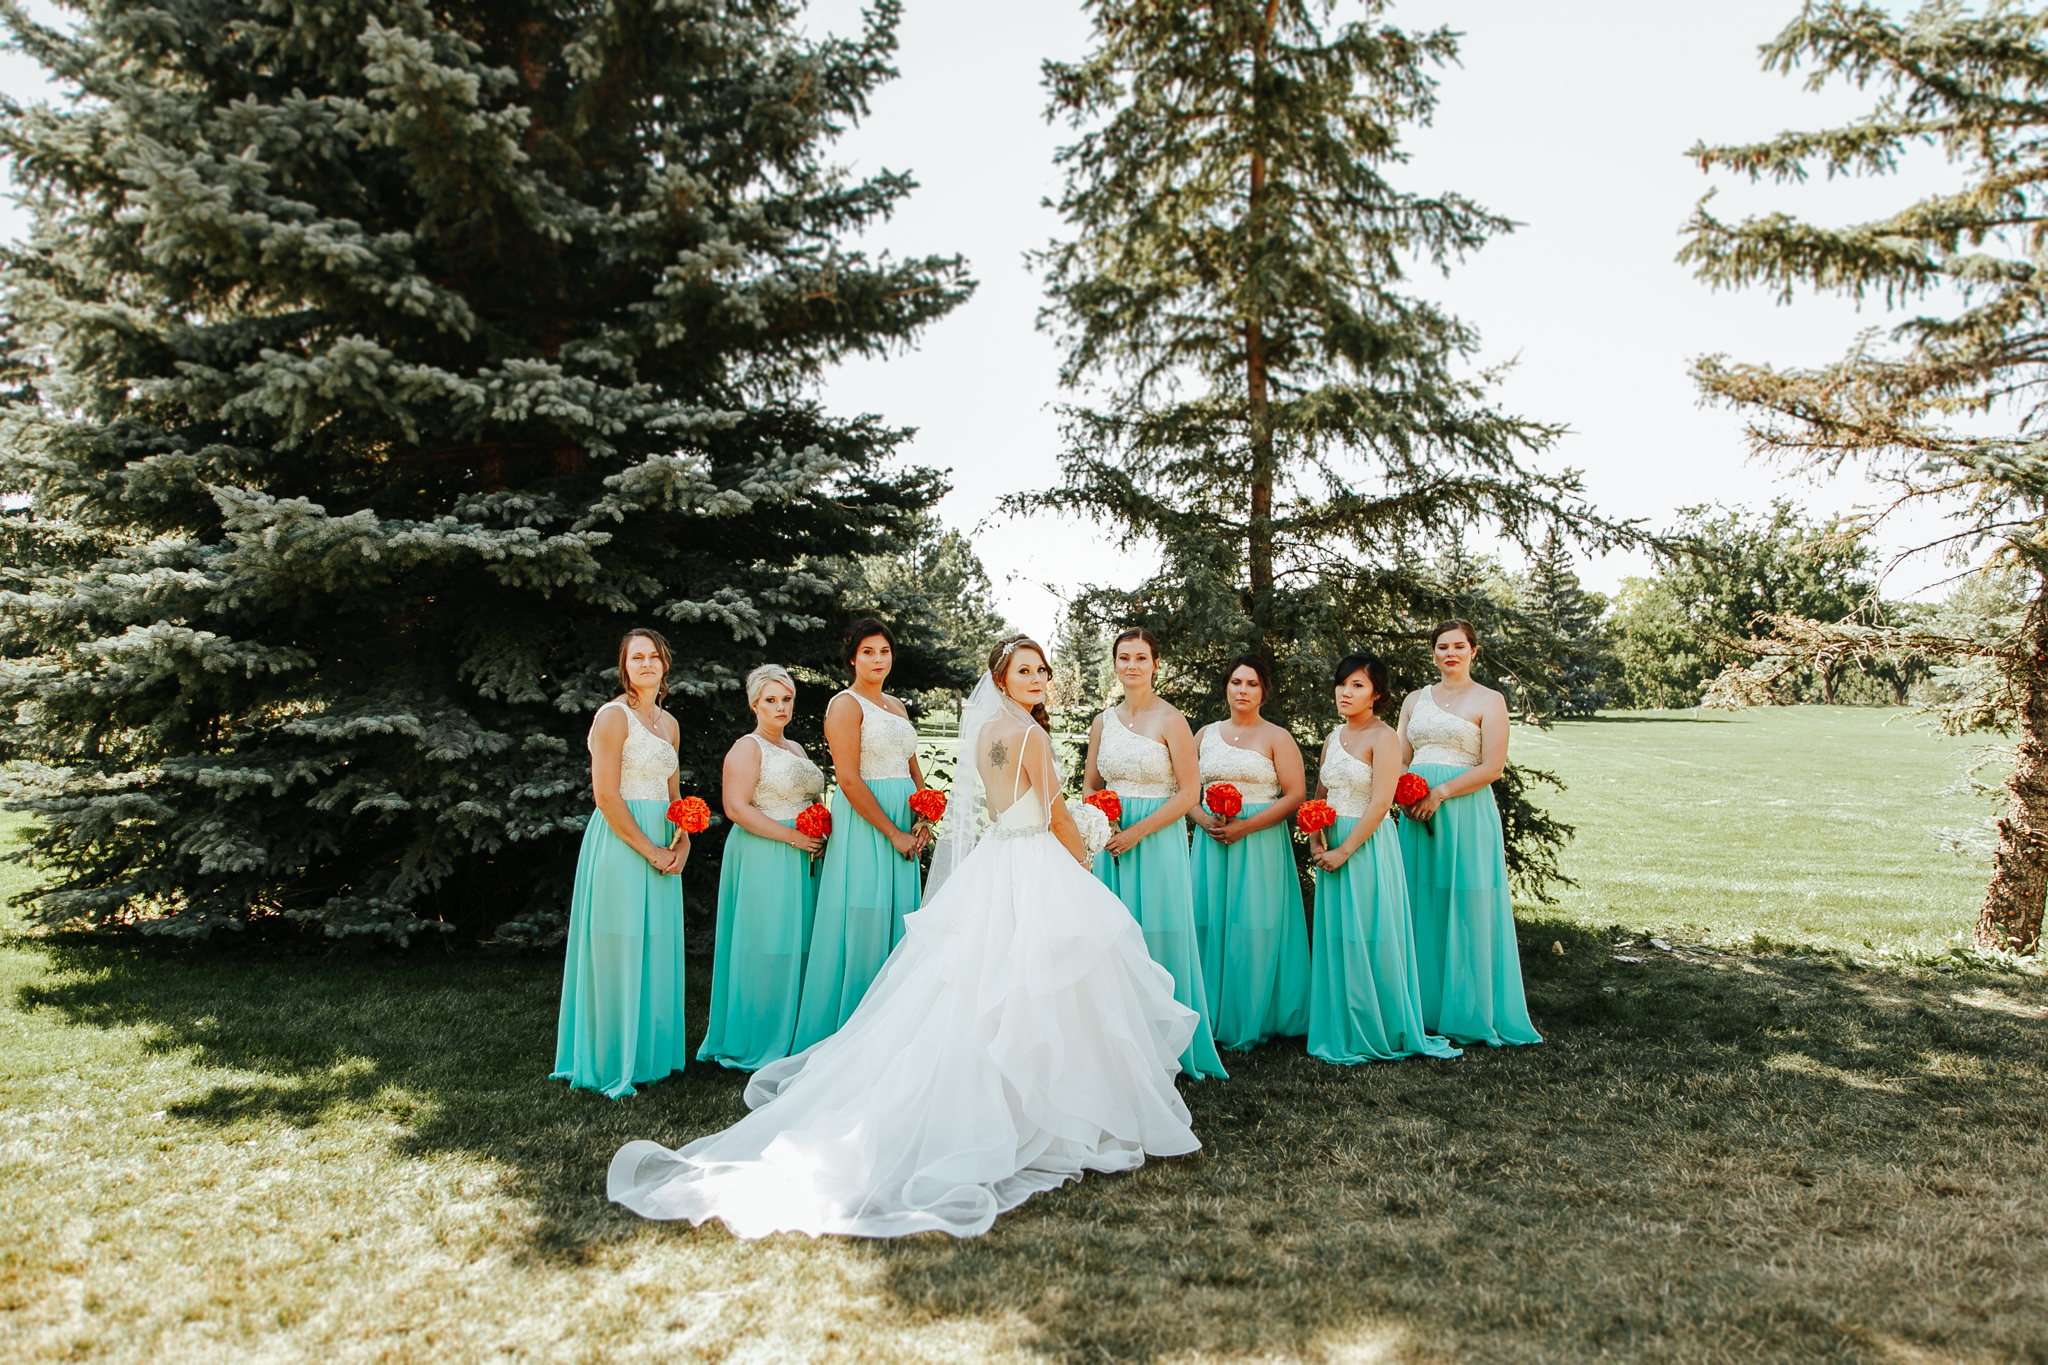 lethbridge-wedding-photography-love-and-be-loved-photographer-sean-sharla-henderson-lake-wedding-image-picture-photo-50.jpg